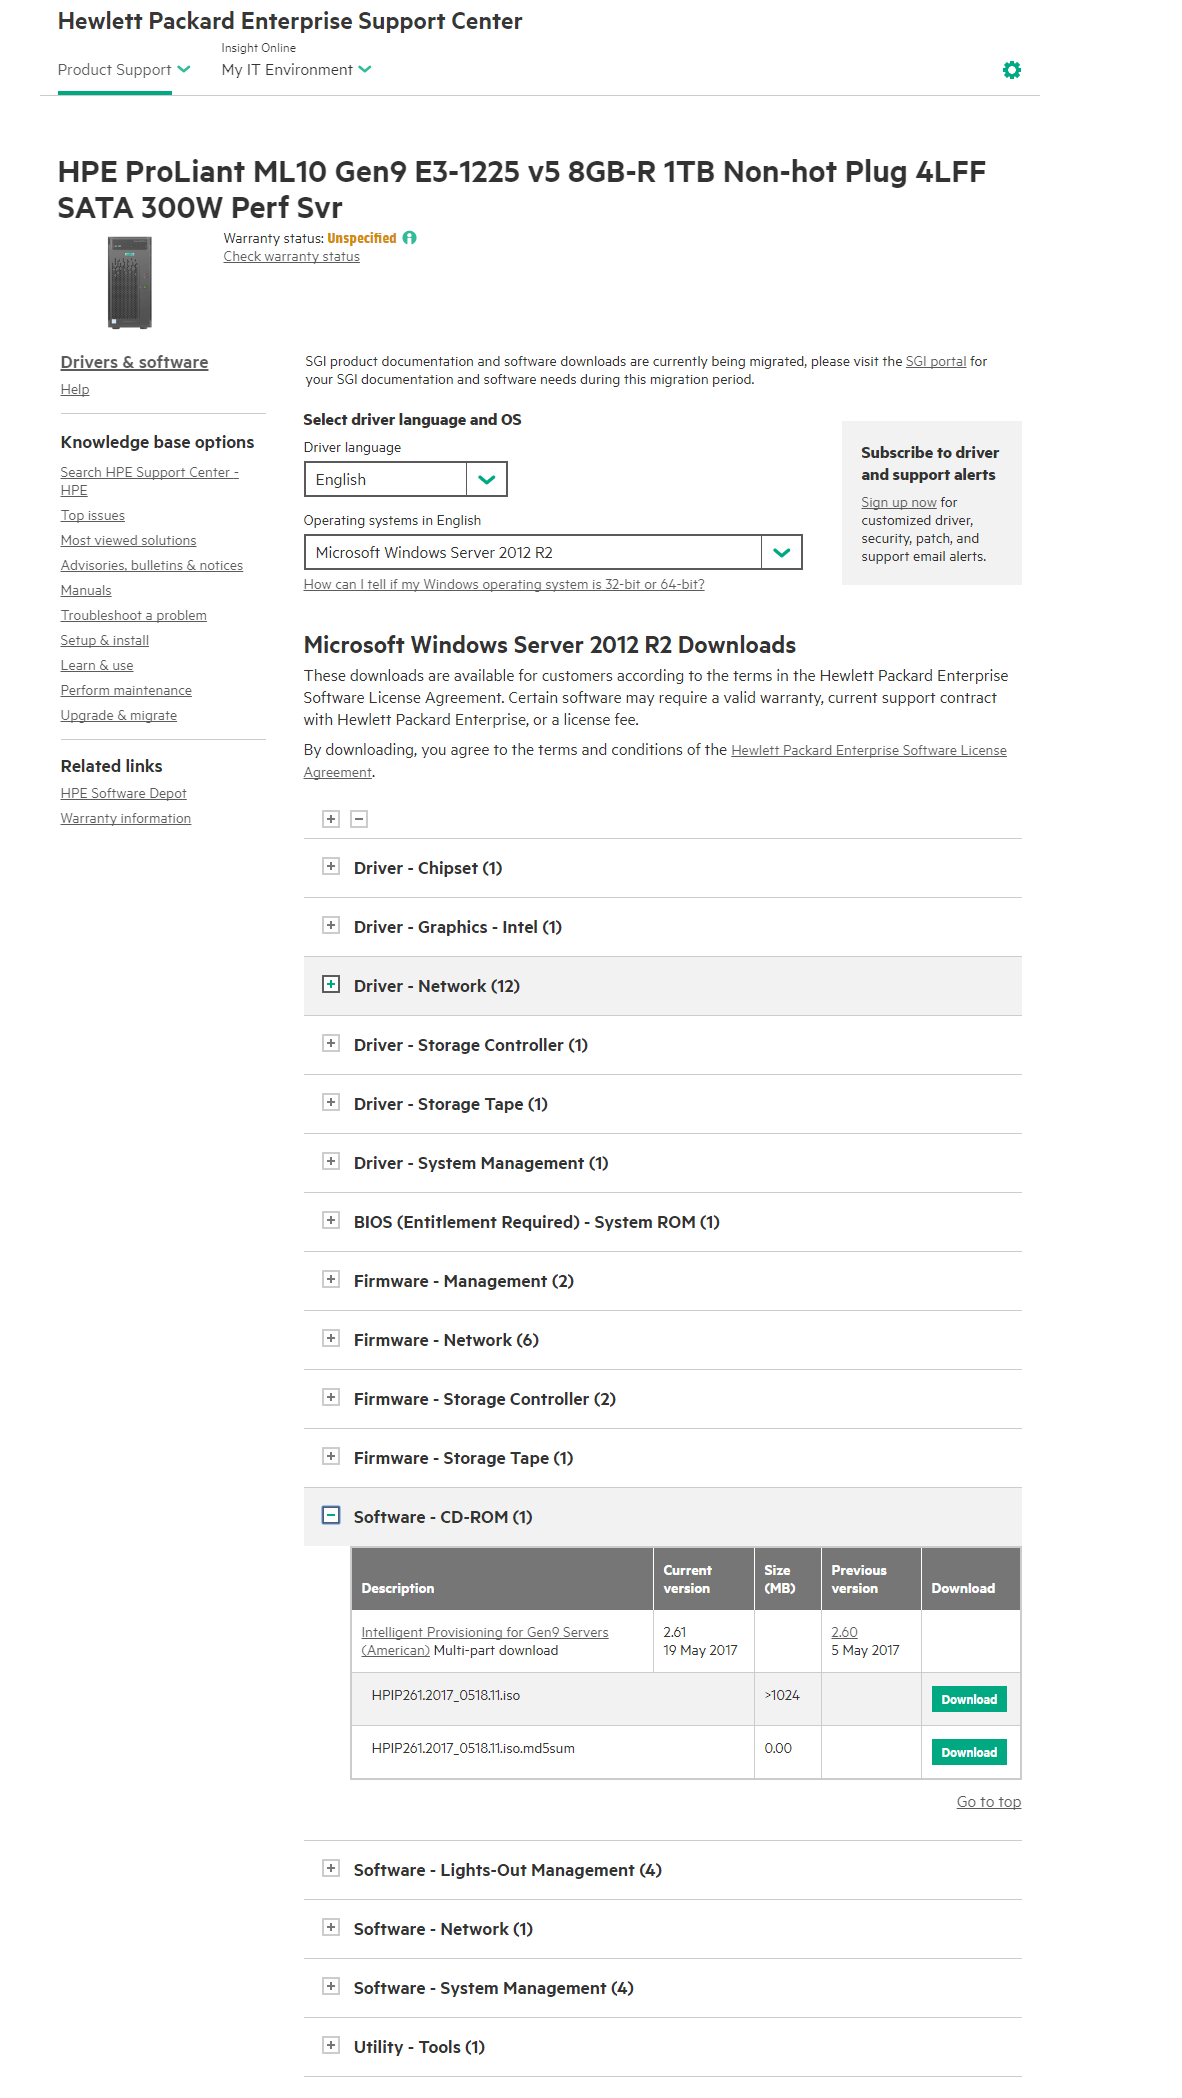 FireShot Capture 7 - Drivers & Software for _ - http___h20565.www2.hpe.com_hpsc_swd_public_readIndex.png